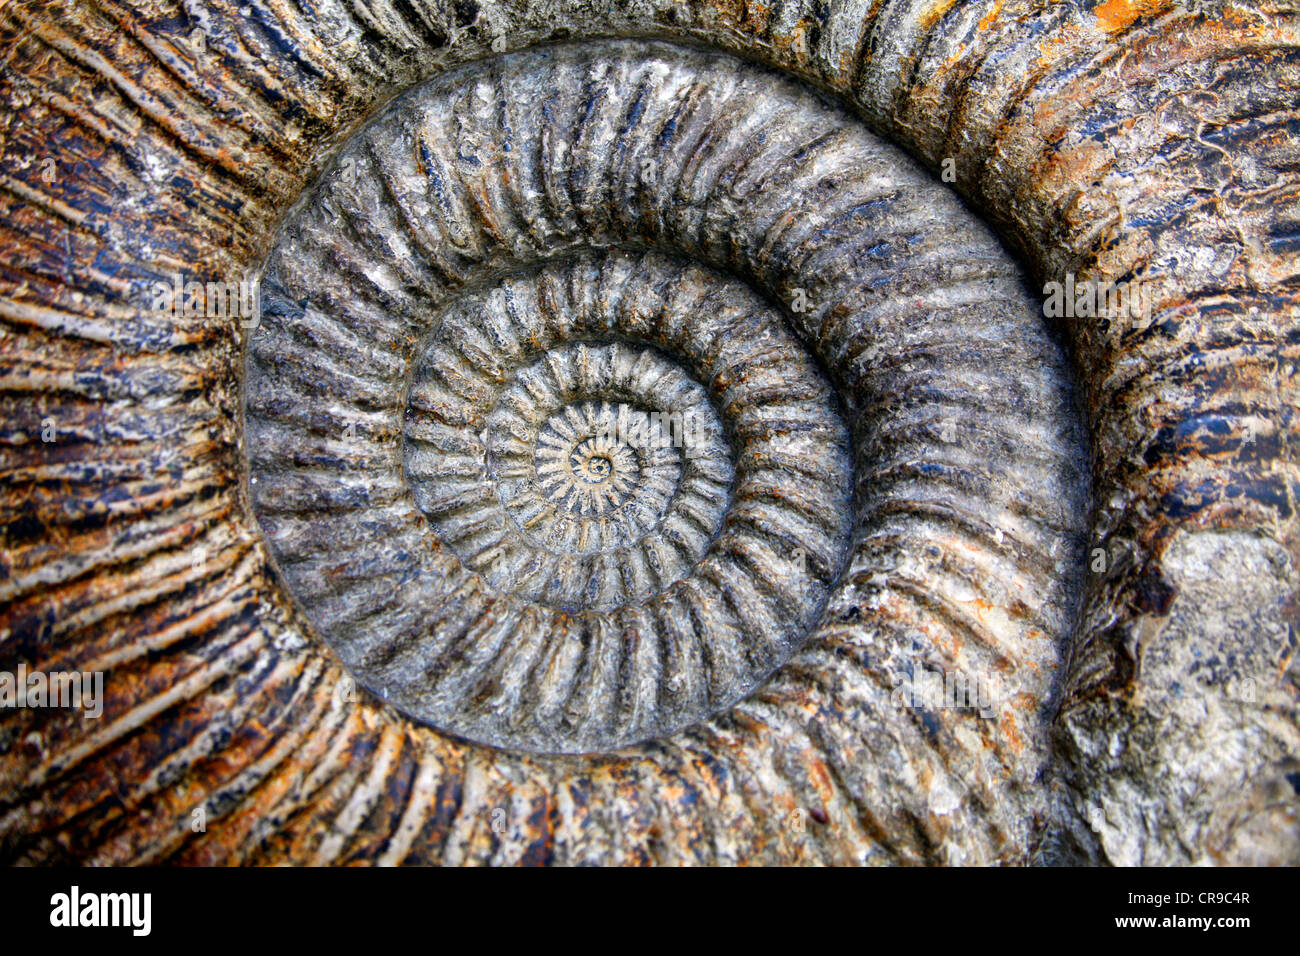 Ammonite, about 140 million years old fossilized cephalopods in the Oxford University Museum of Natural History, - Stock Image